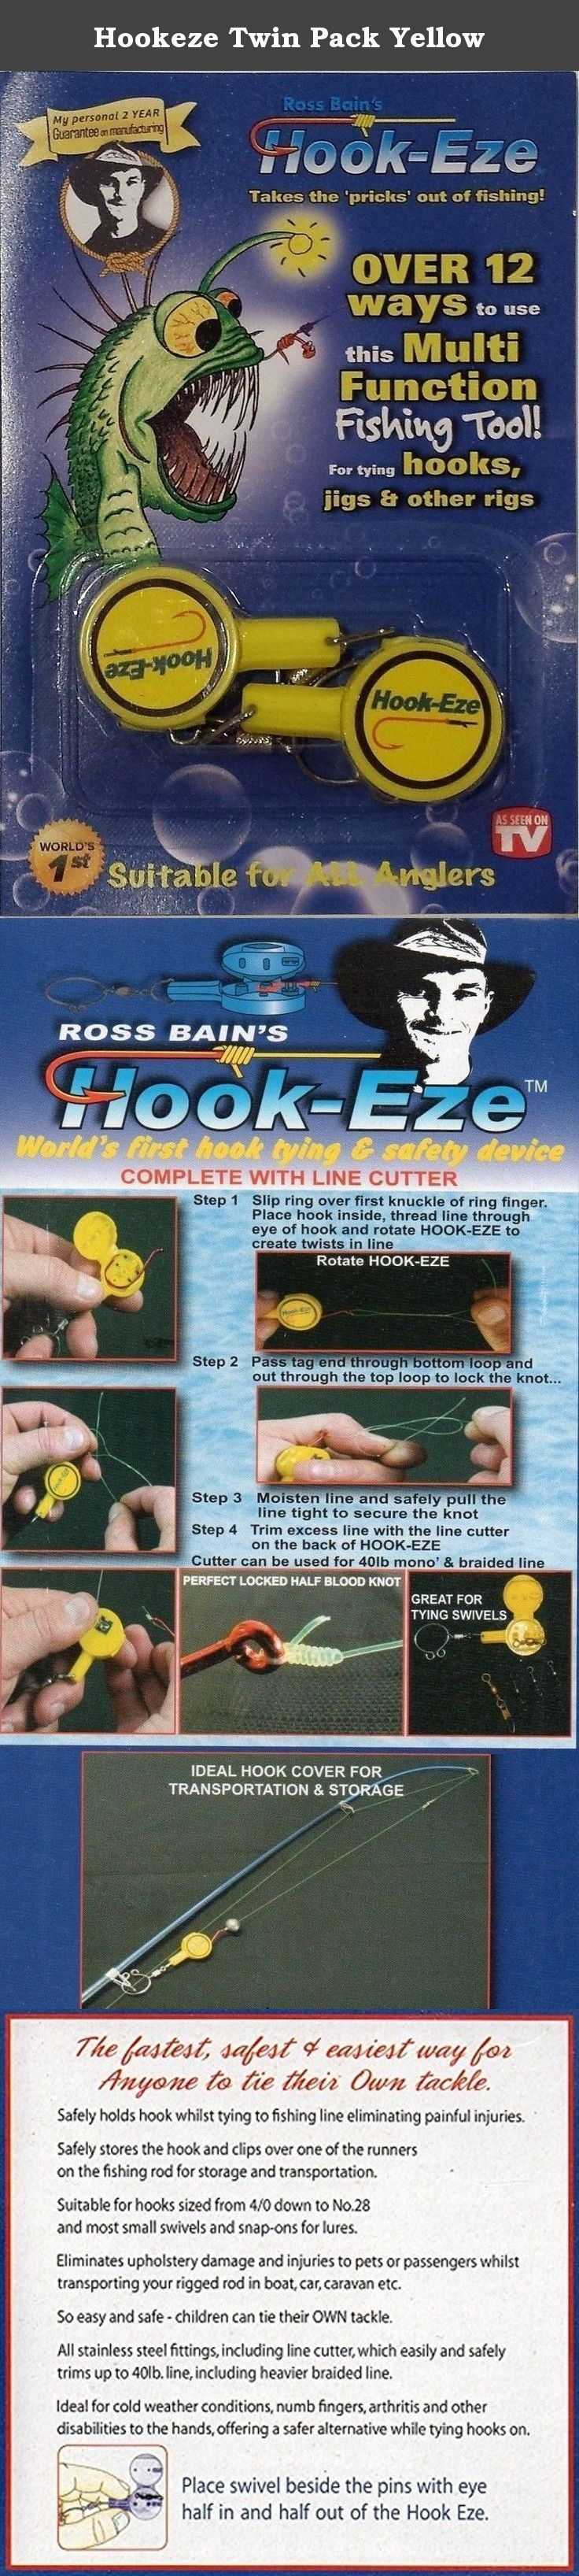 Hookeze Twin Pack Yellow. Ross invented Hook-Eze, a nifty little gadget that makes tying fishing hooks onto the line not only safer, but a whole lot easier.The barbs of the fishing hook are protected in the case, while a spinning ring on your finger makes twisting the line a breeze. Hook-Eze is suitable for standard fishing hooks sized from 4/0 down to No.28 or circle hooks 3/0 or smaller. selected flies, swivels, snap-ons & speed clips for lure fishing. It's great for tying line to line…